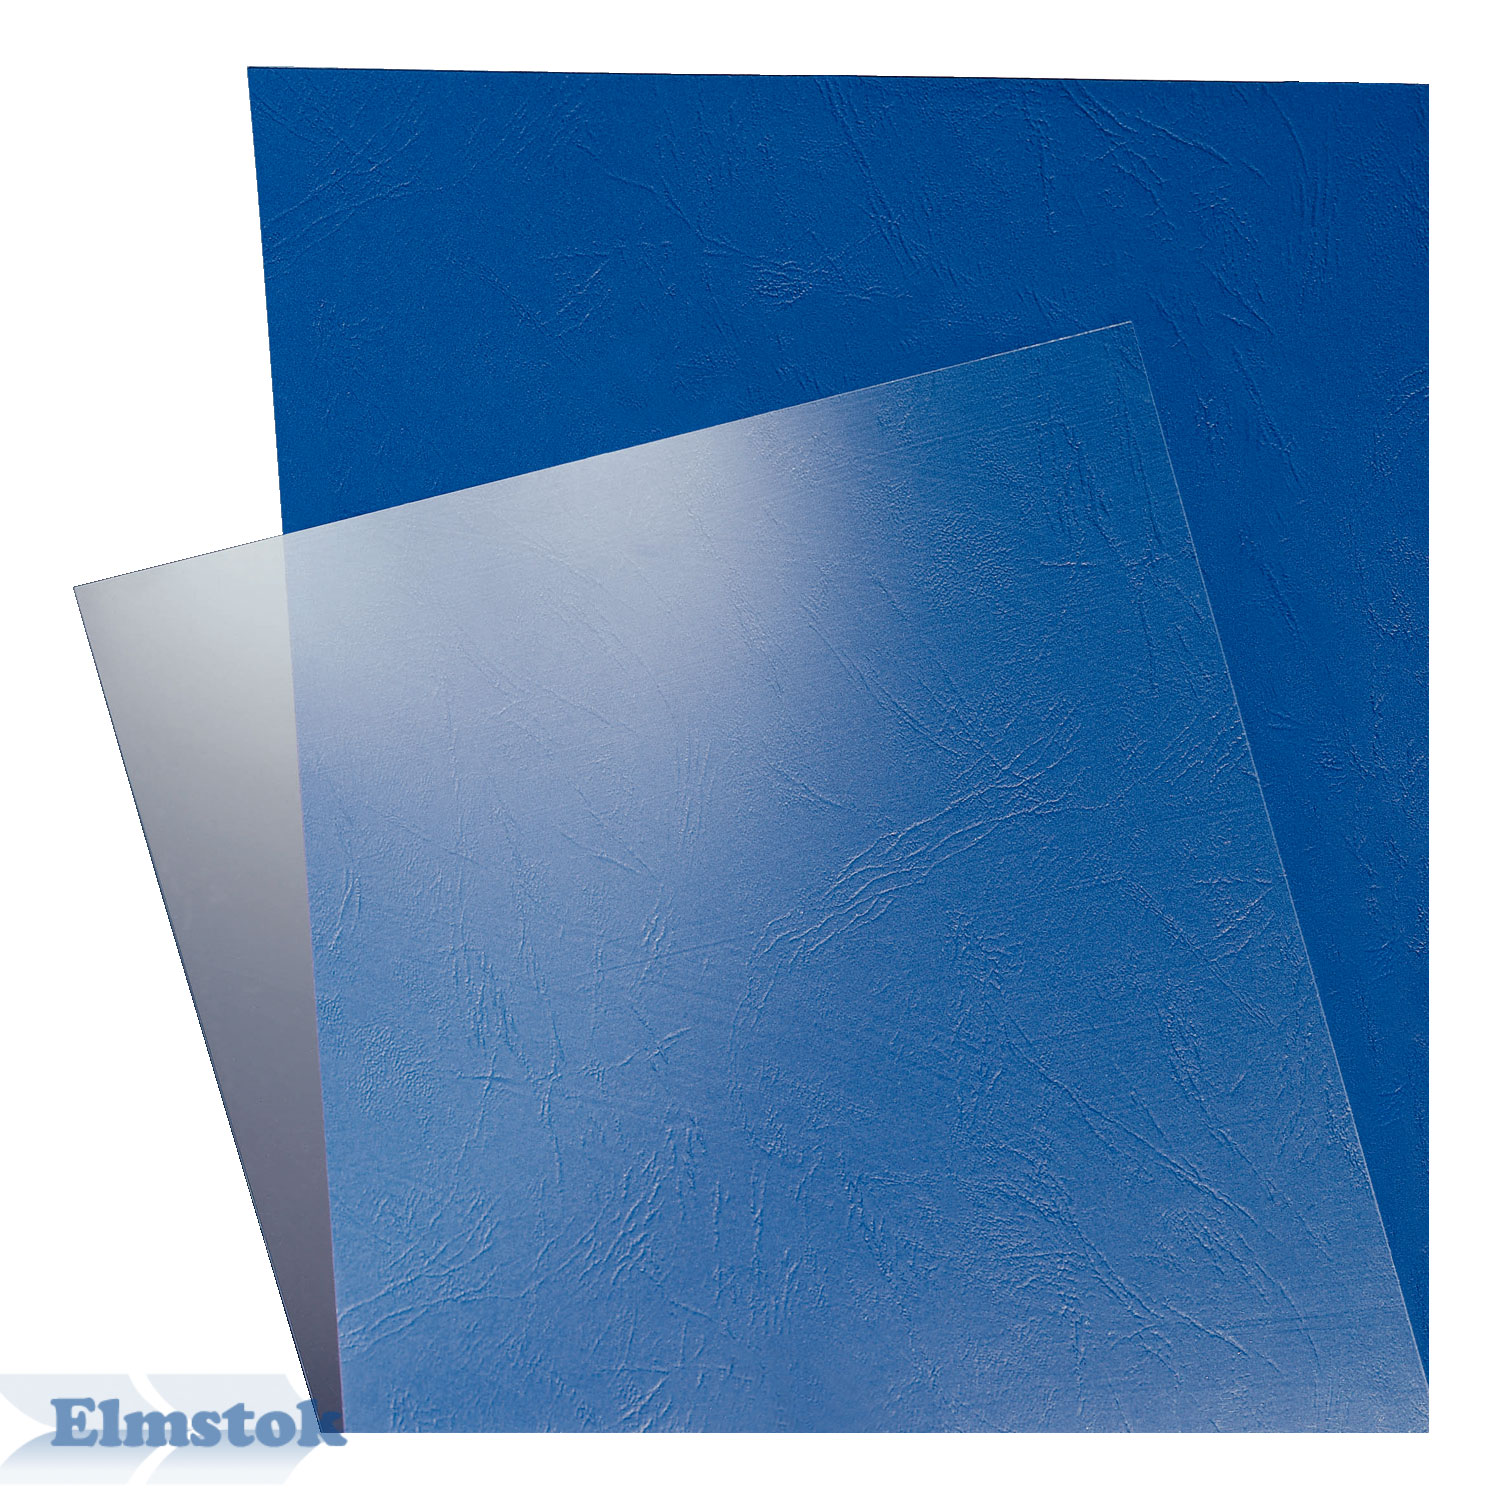 Frosted Polypropylene Binding Report Cover Sheets